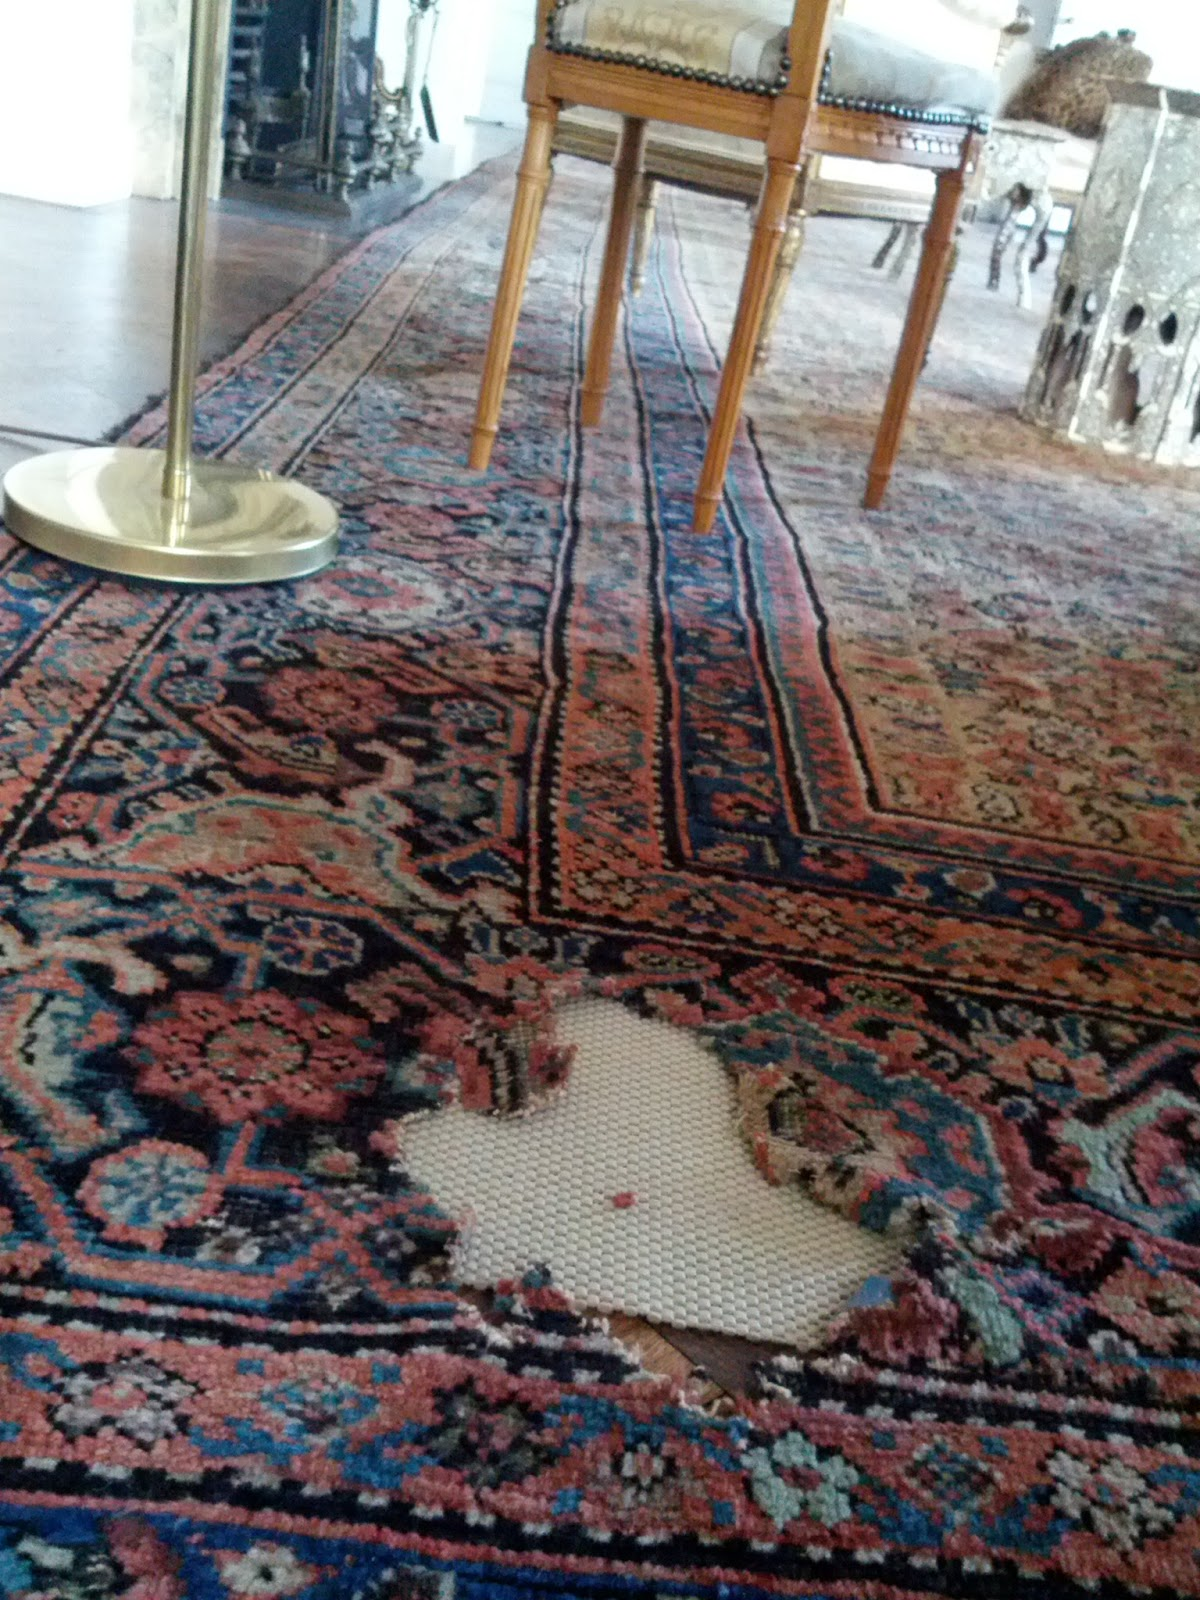 We Will Then Make Sure All Repairs Are Secure And Wash The Entire Rug End Result Should Show Little To No Signs Of Dry Rot Ever Occurring